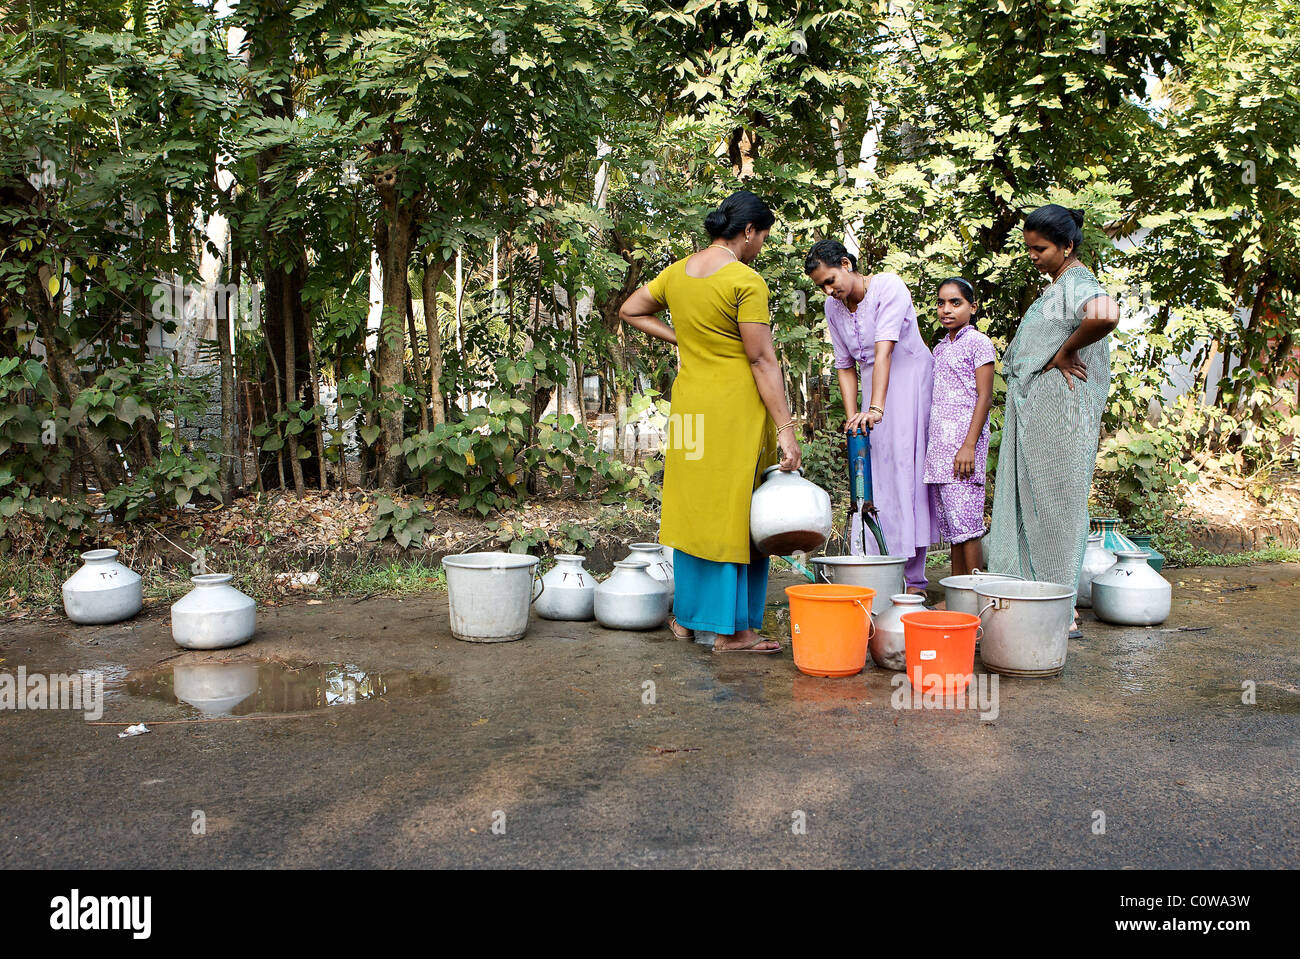 Women collect fresh water from a road-side water pump in a small village south of Kochi, Kerala, India - Stock Image